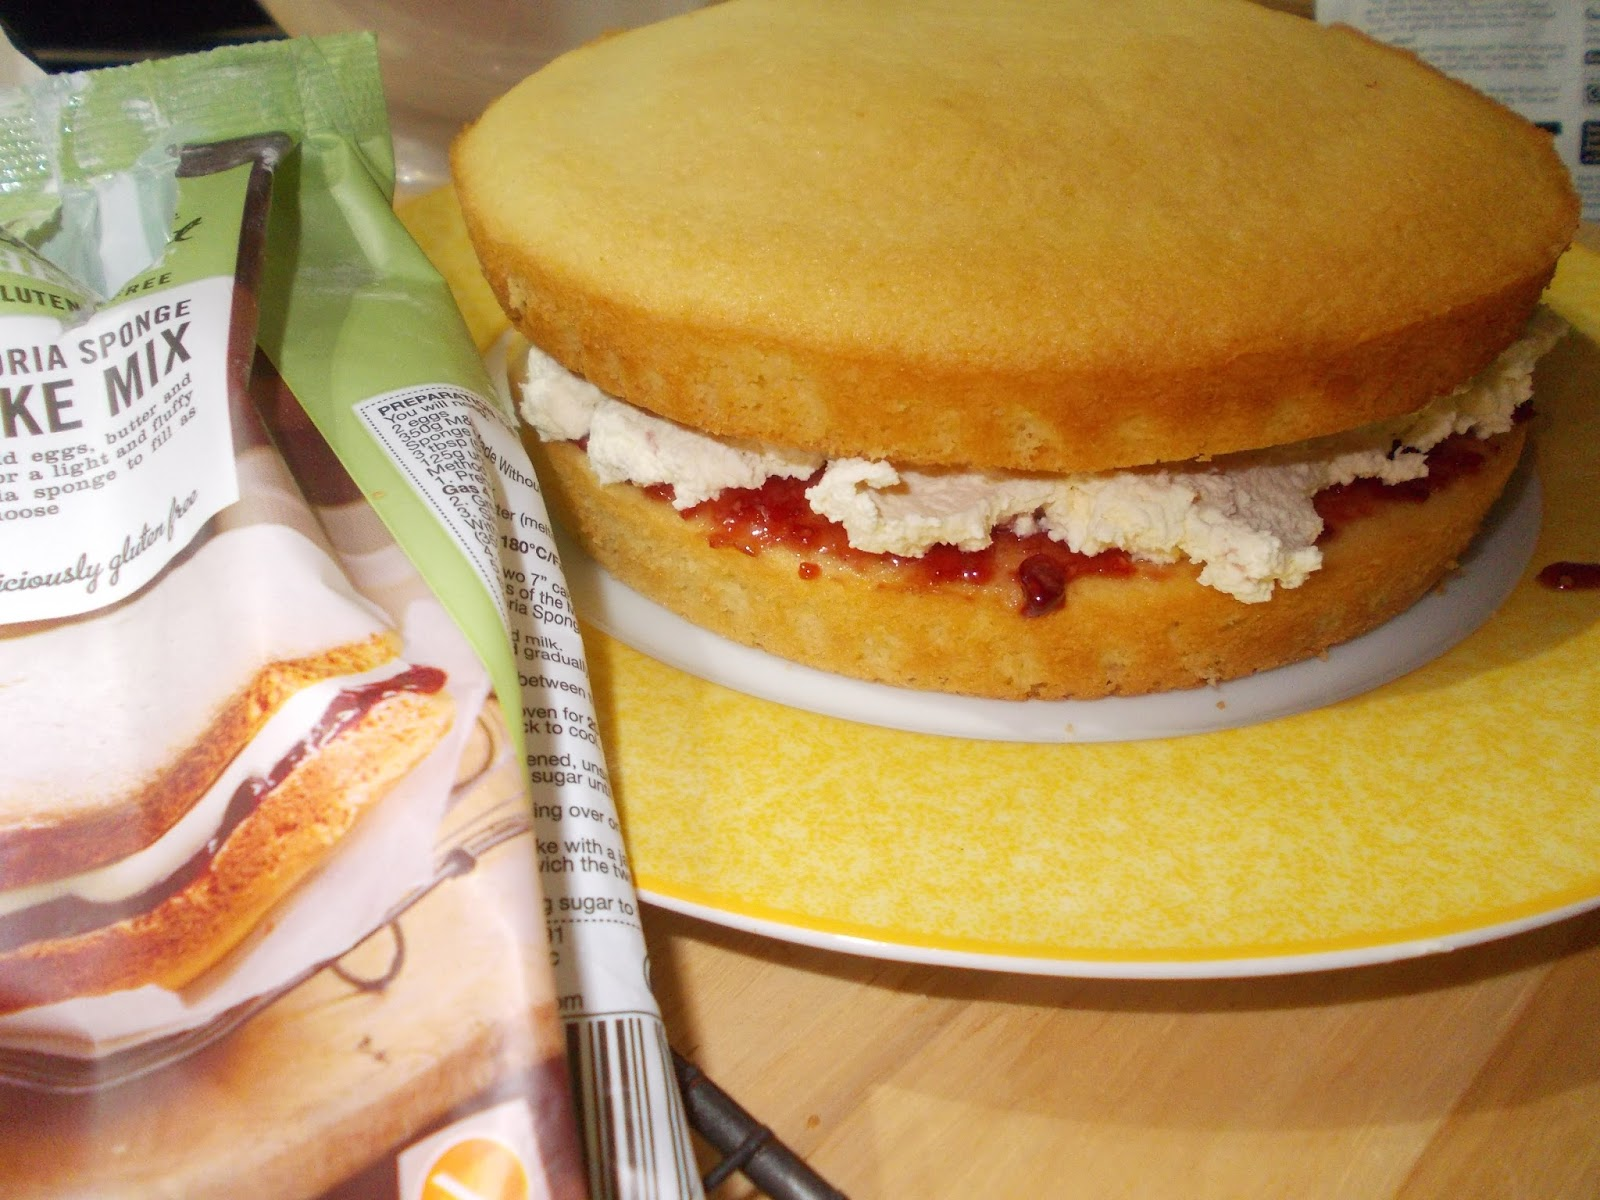 Marks And Spencer Cake Mix